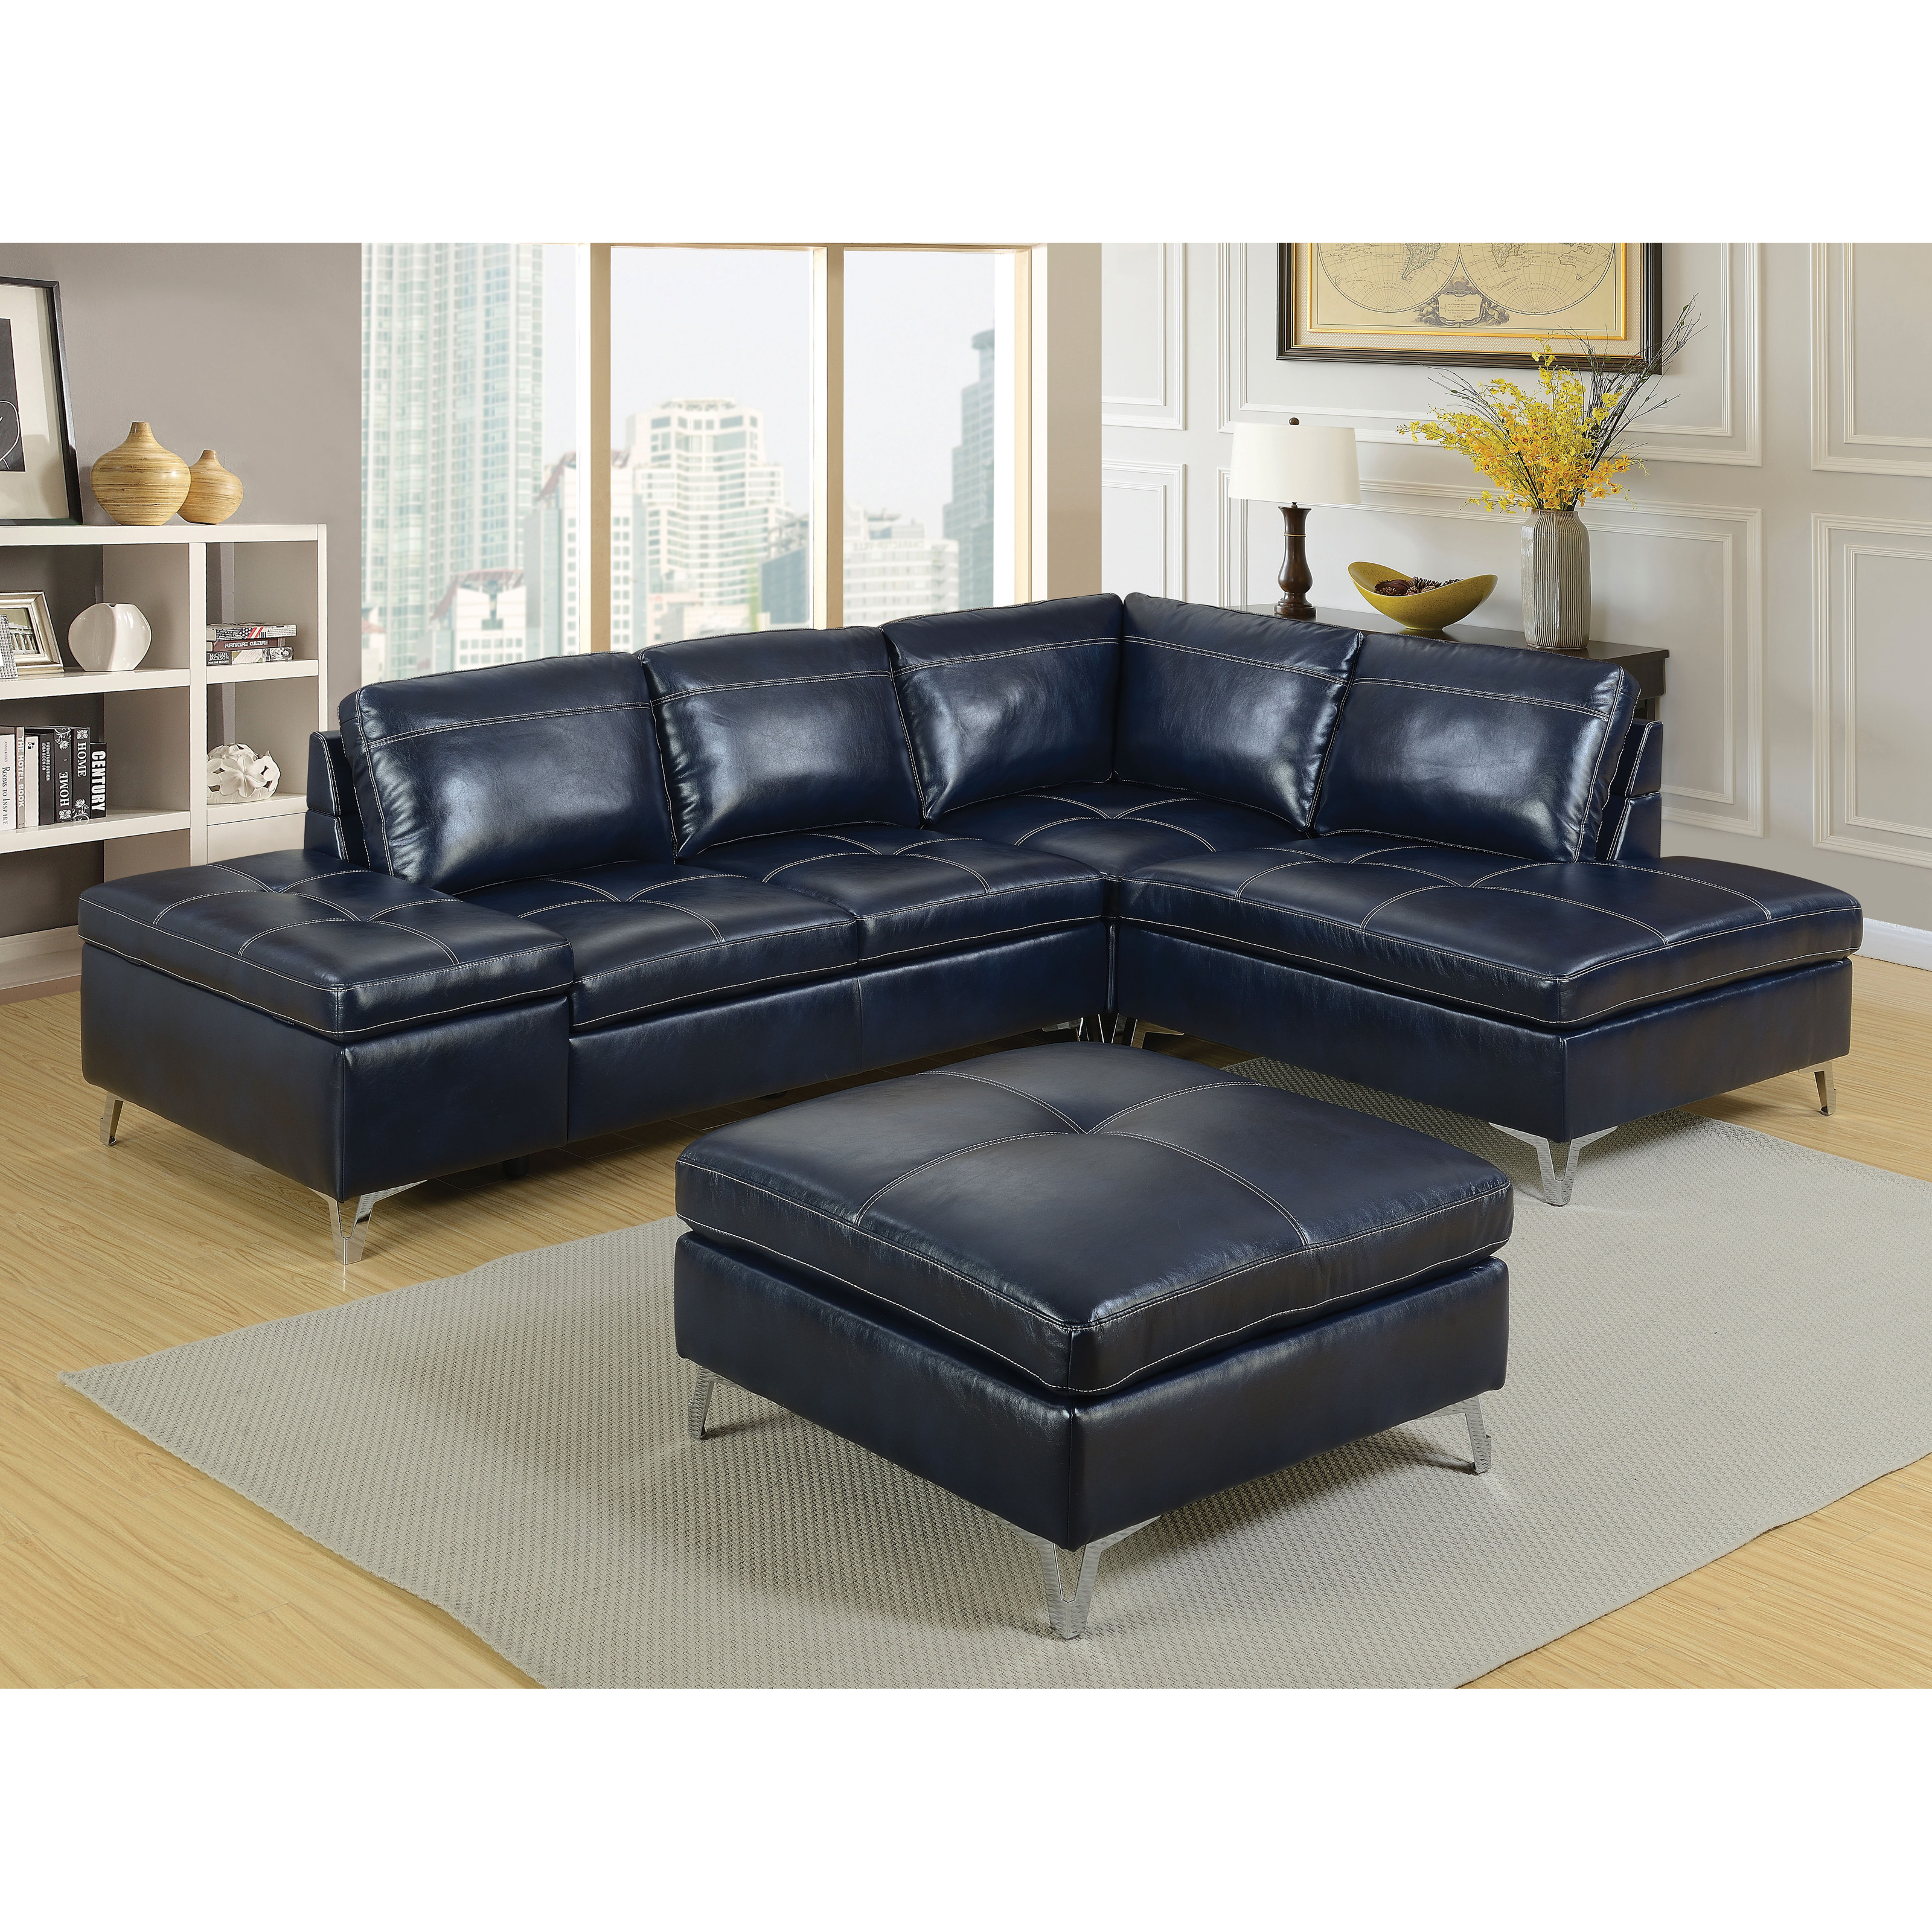 Furniture Of America Brandon Sectional Sofa With Ottoman